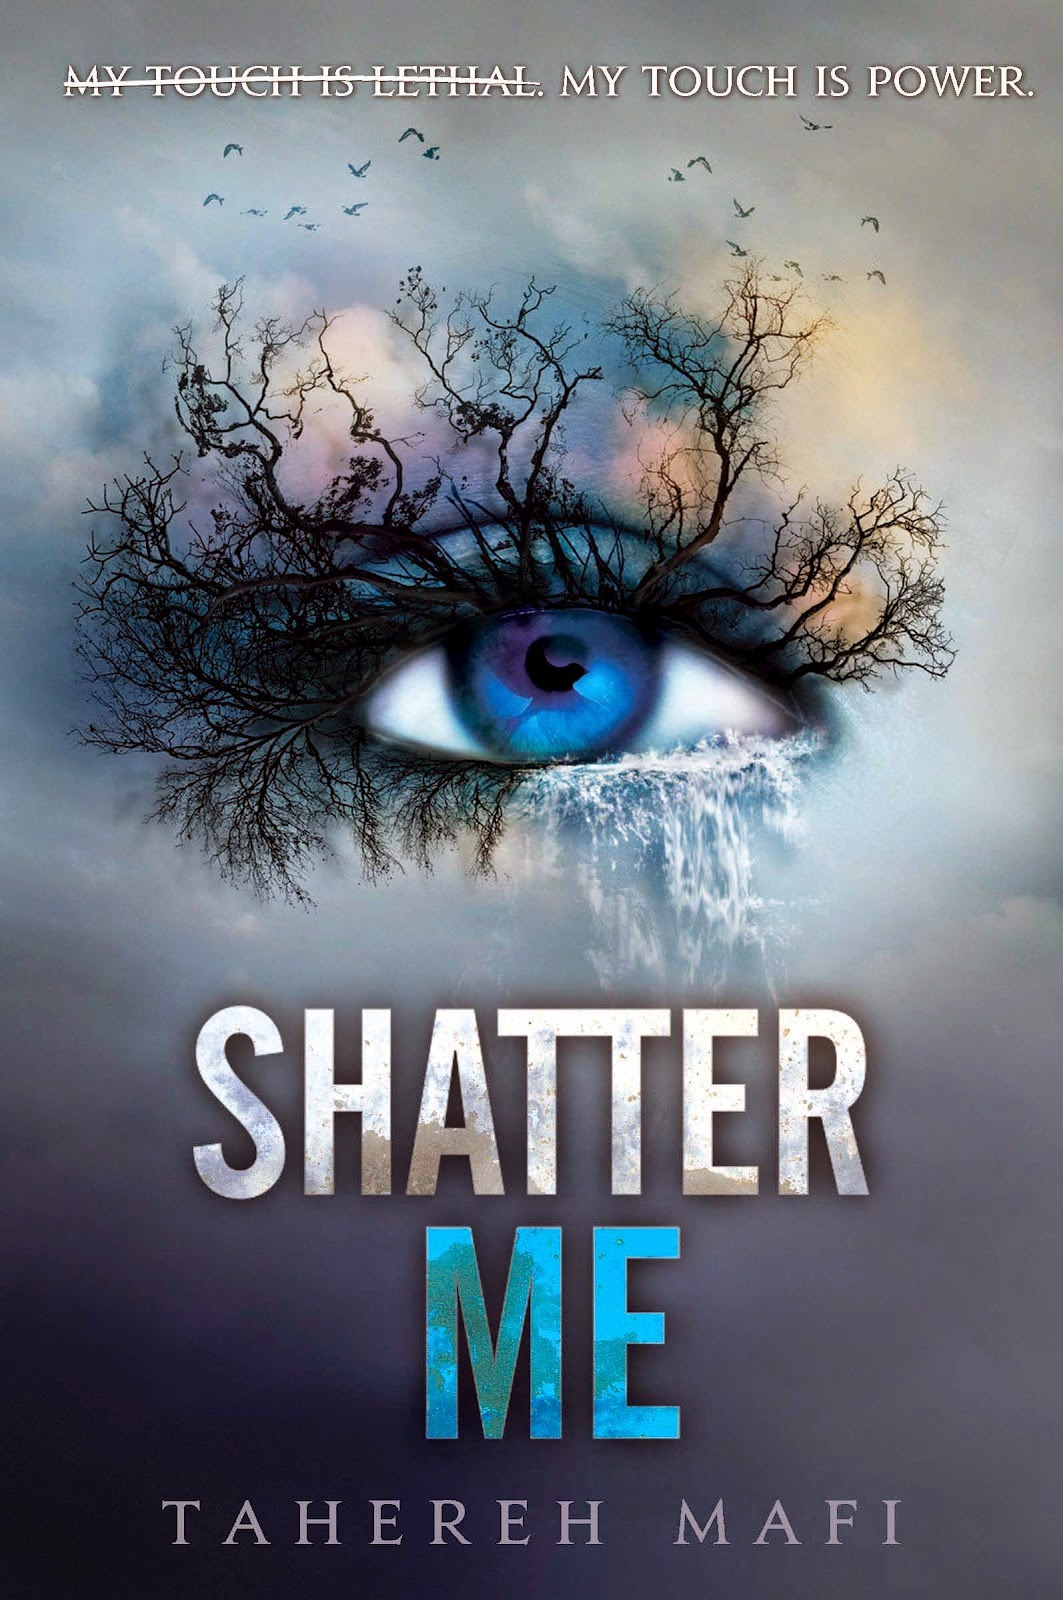 Shatter Me - Tahereh Mafi